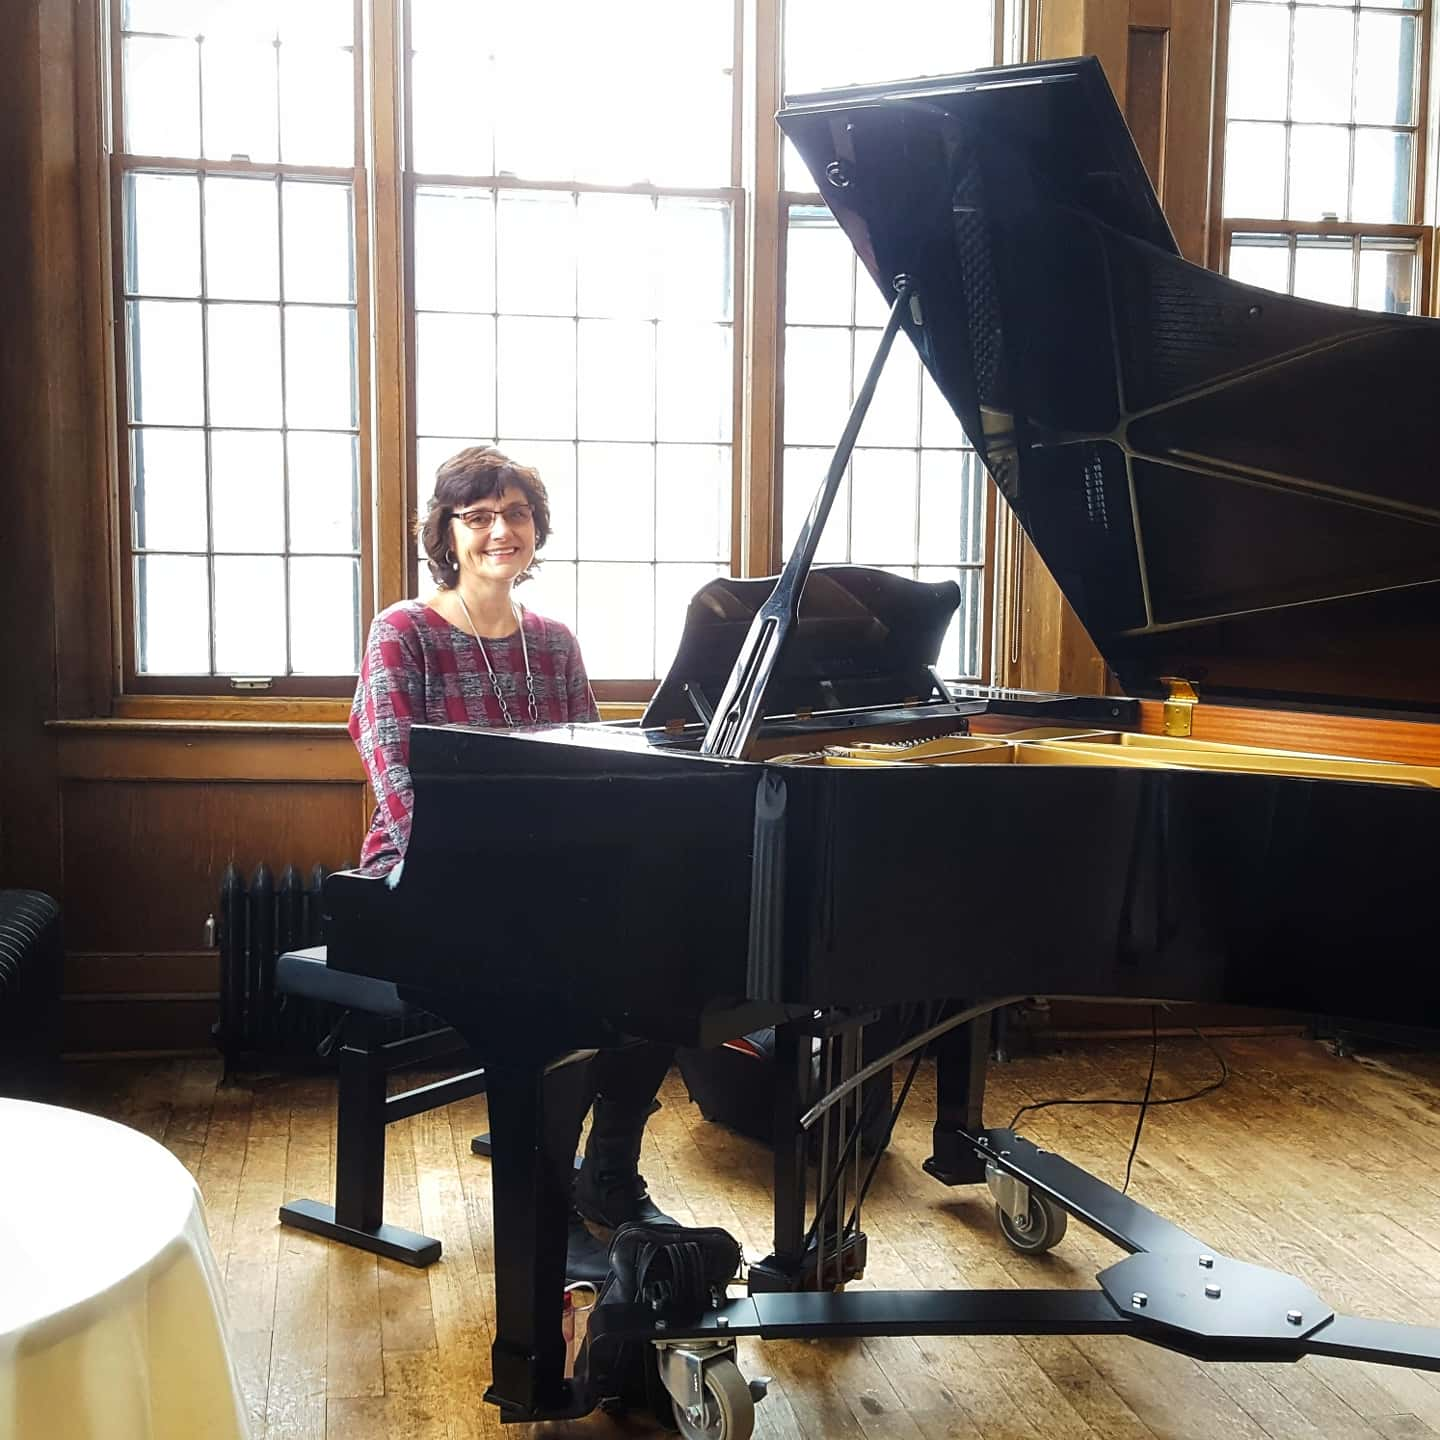 Sharon Planer, Pianist for Parties in the Twin Cities. Find a live piano player